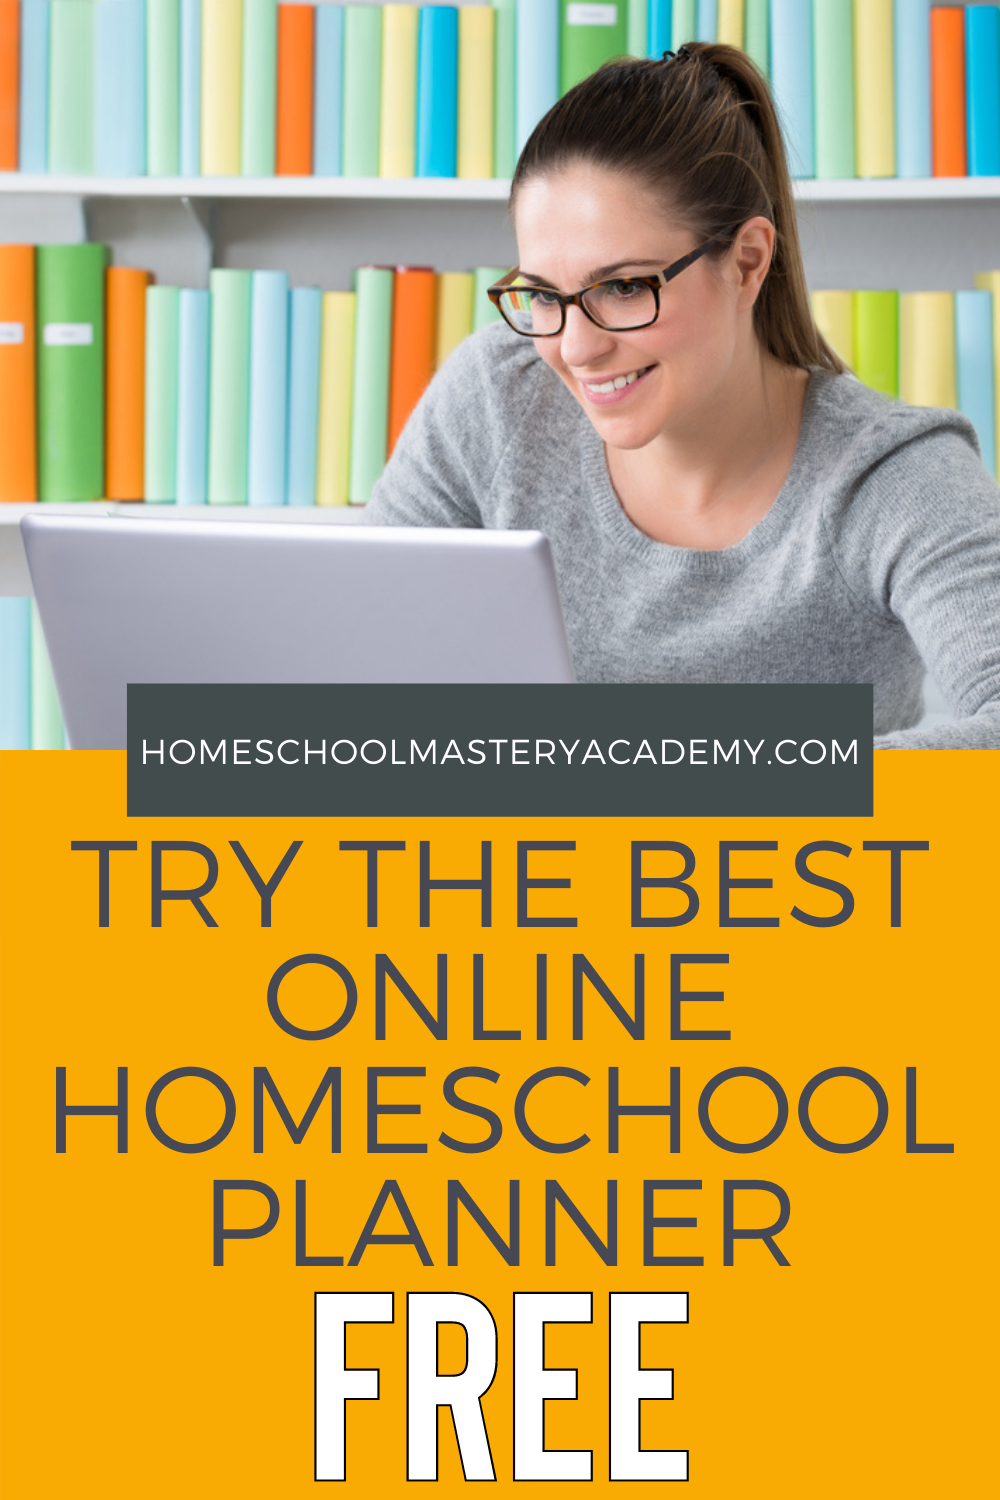 Are you looking for an online homeschooler planner? One that you can plan life, work, and homeschool? Try Homeschool Planet for 30 days and see what all the hype is about! #homeschool #homeschoolplanet #homeschoolplanning